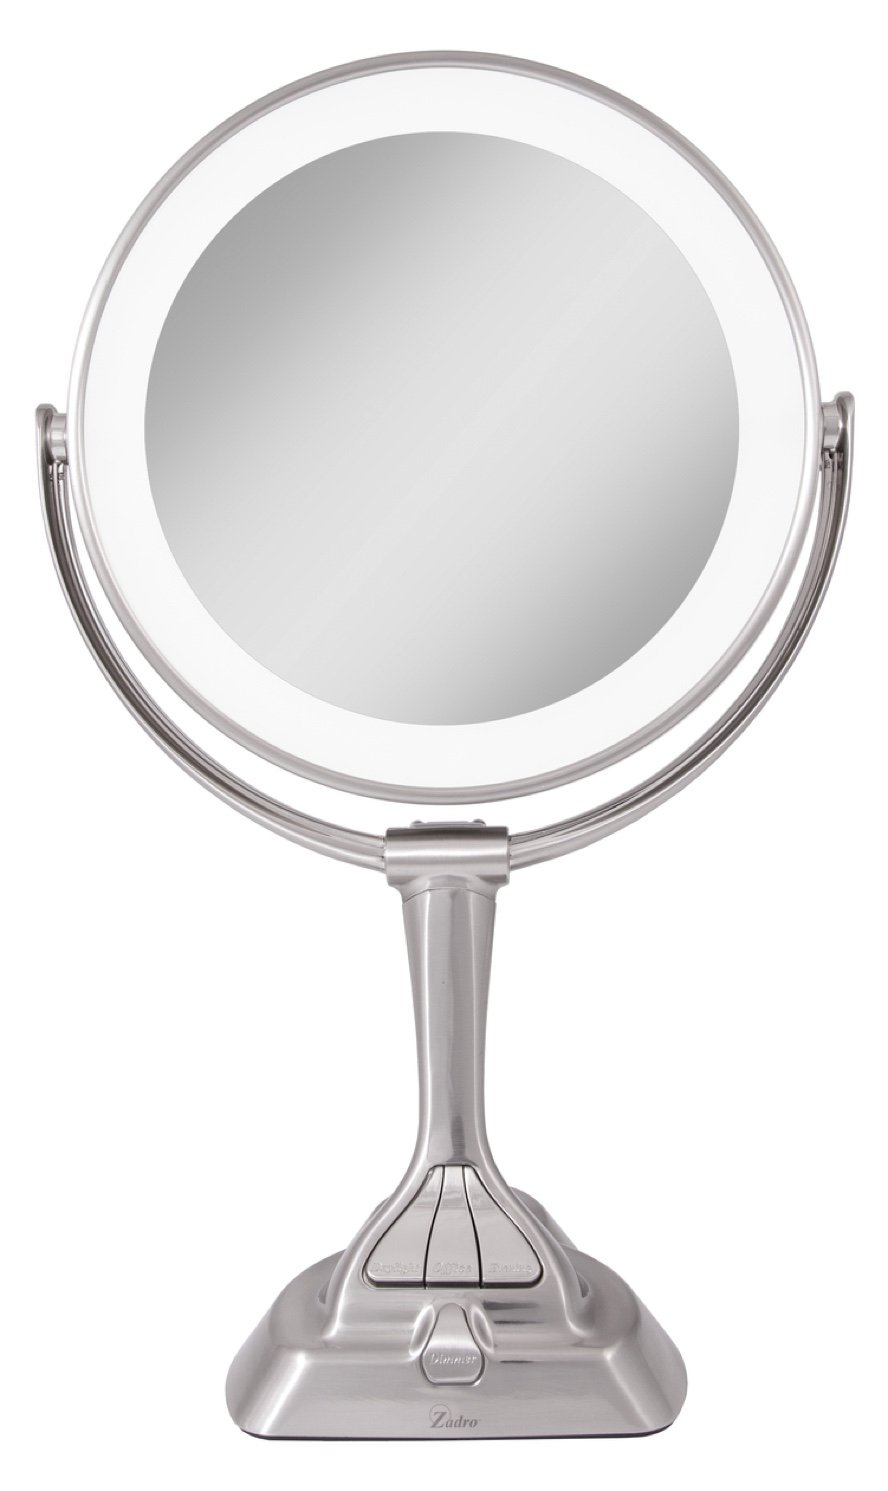 Amazon zadro led light dimmable dual sided vanity mirror amazon zadro led light dimmable dual sided vanity mirror satin nickel beauty aloadofball Image collections